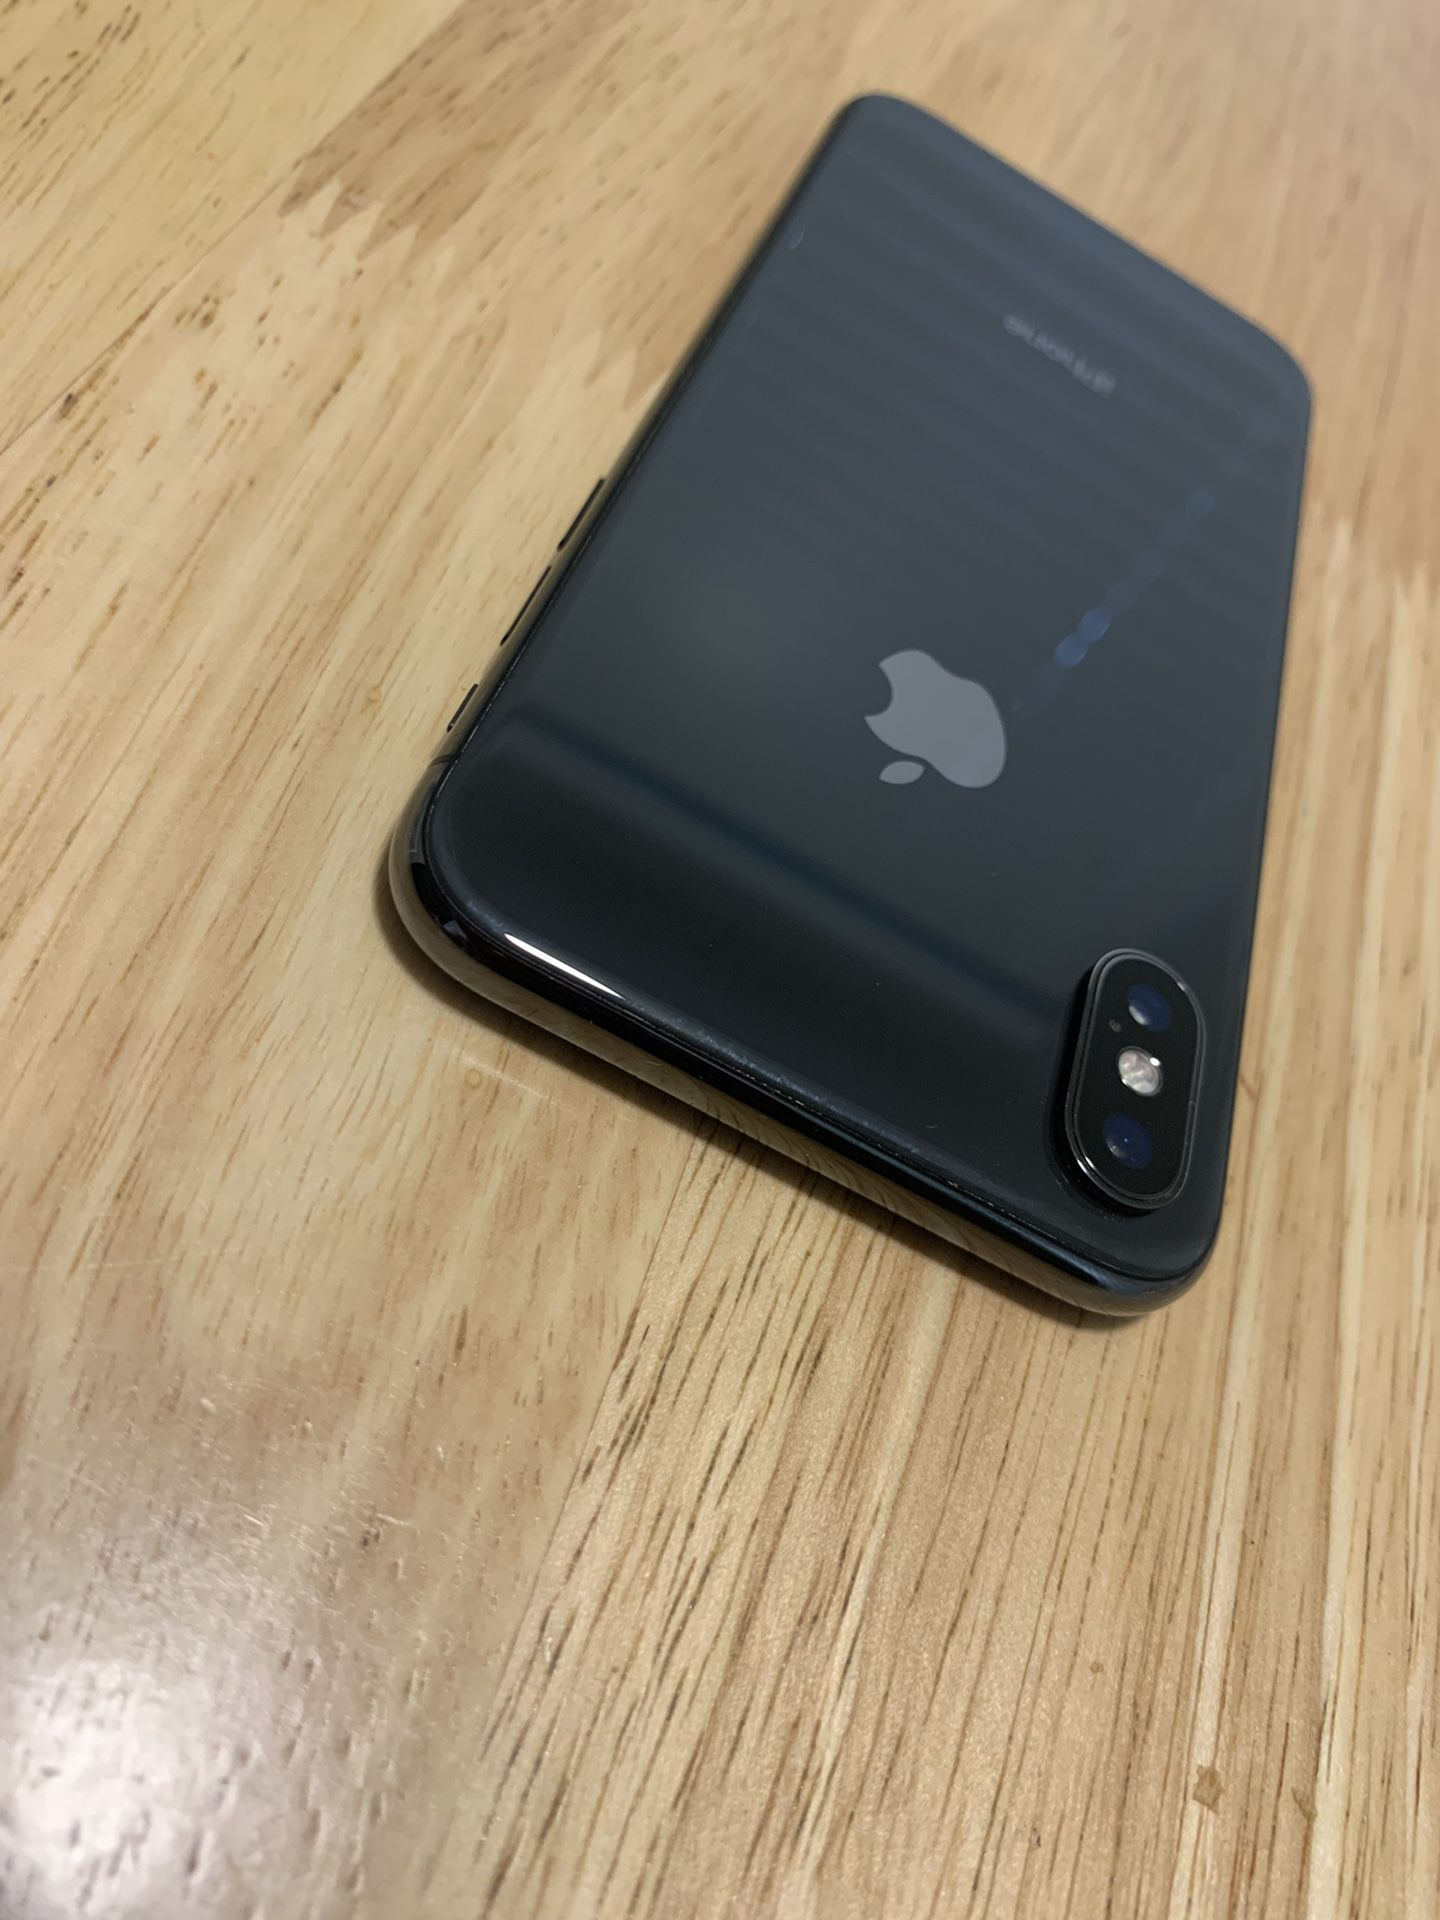 IPHONE X 256GB UNLOCKED TOO ALL CARRIERS AND WORDLE WIDE